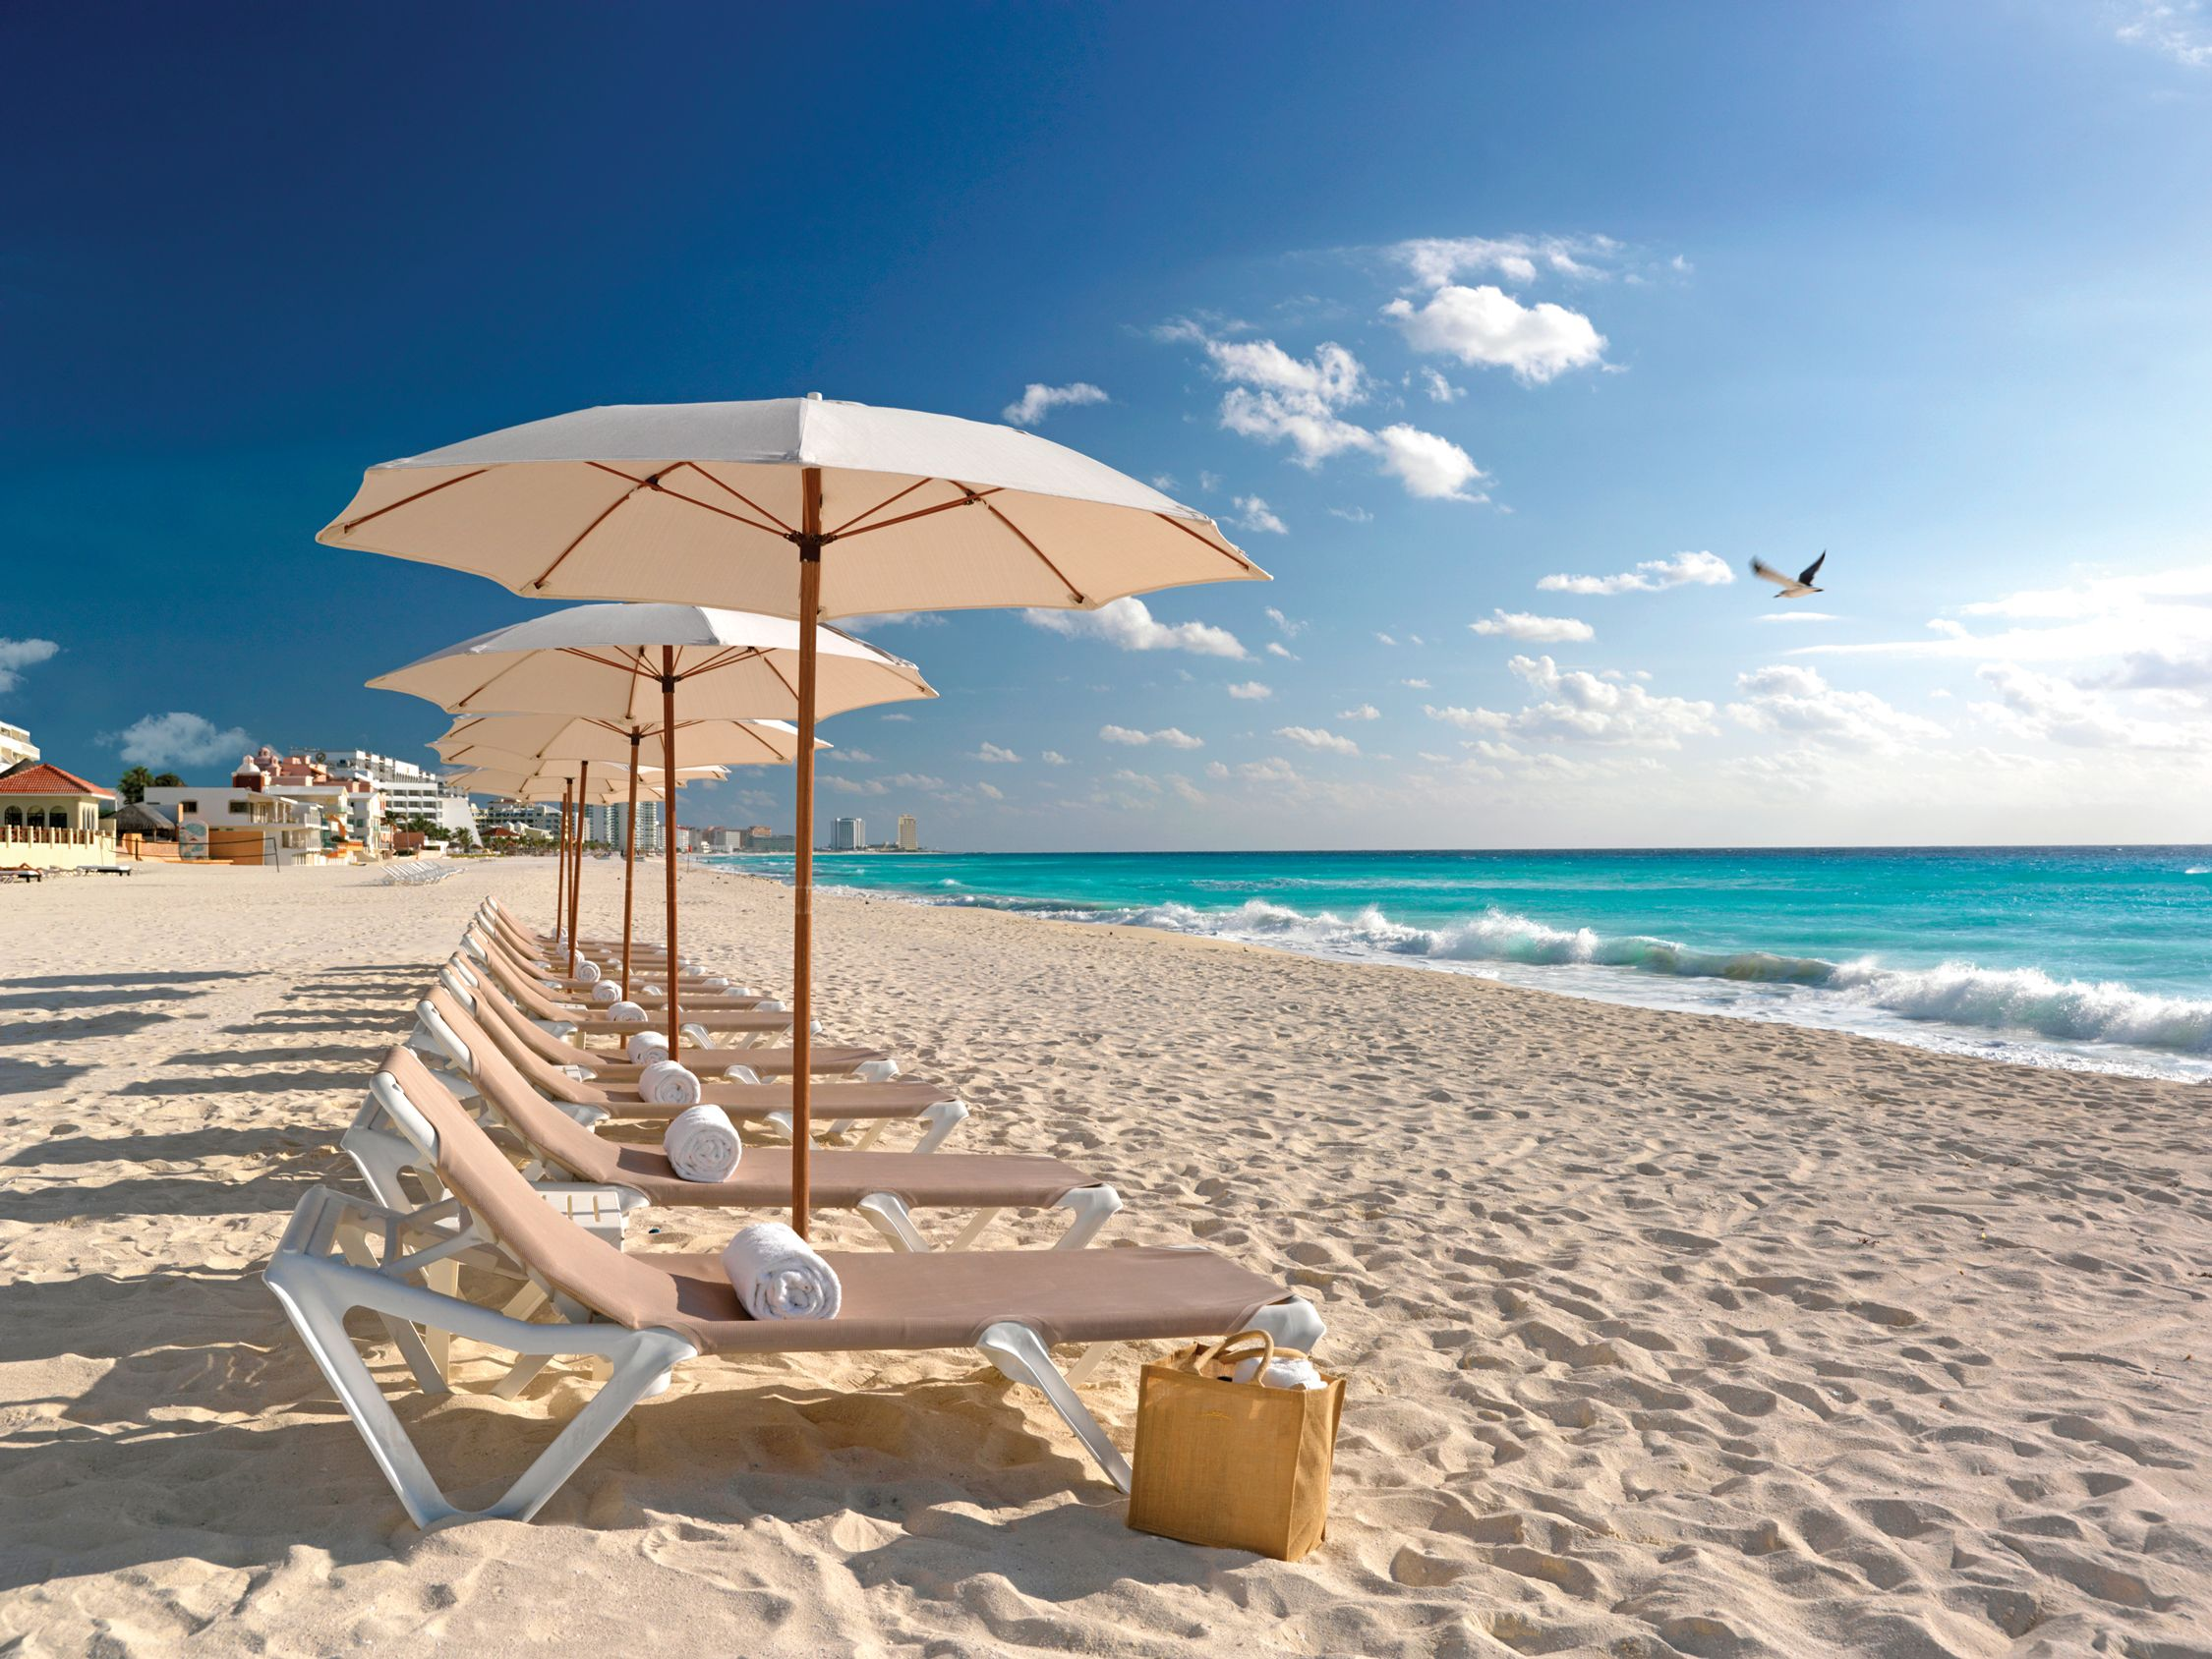 The Beach At Palace Family All Inclusive Resort Located In Cancun Mexico